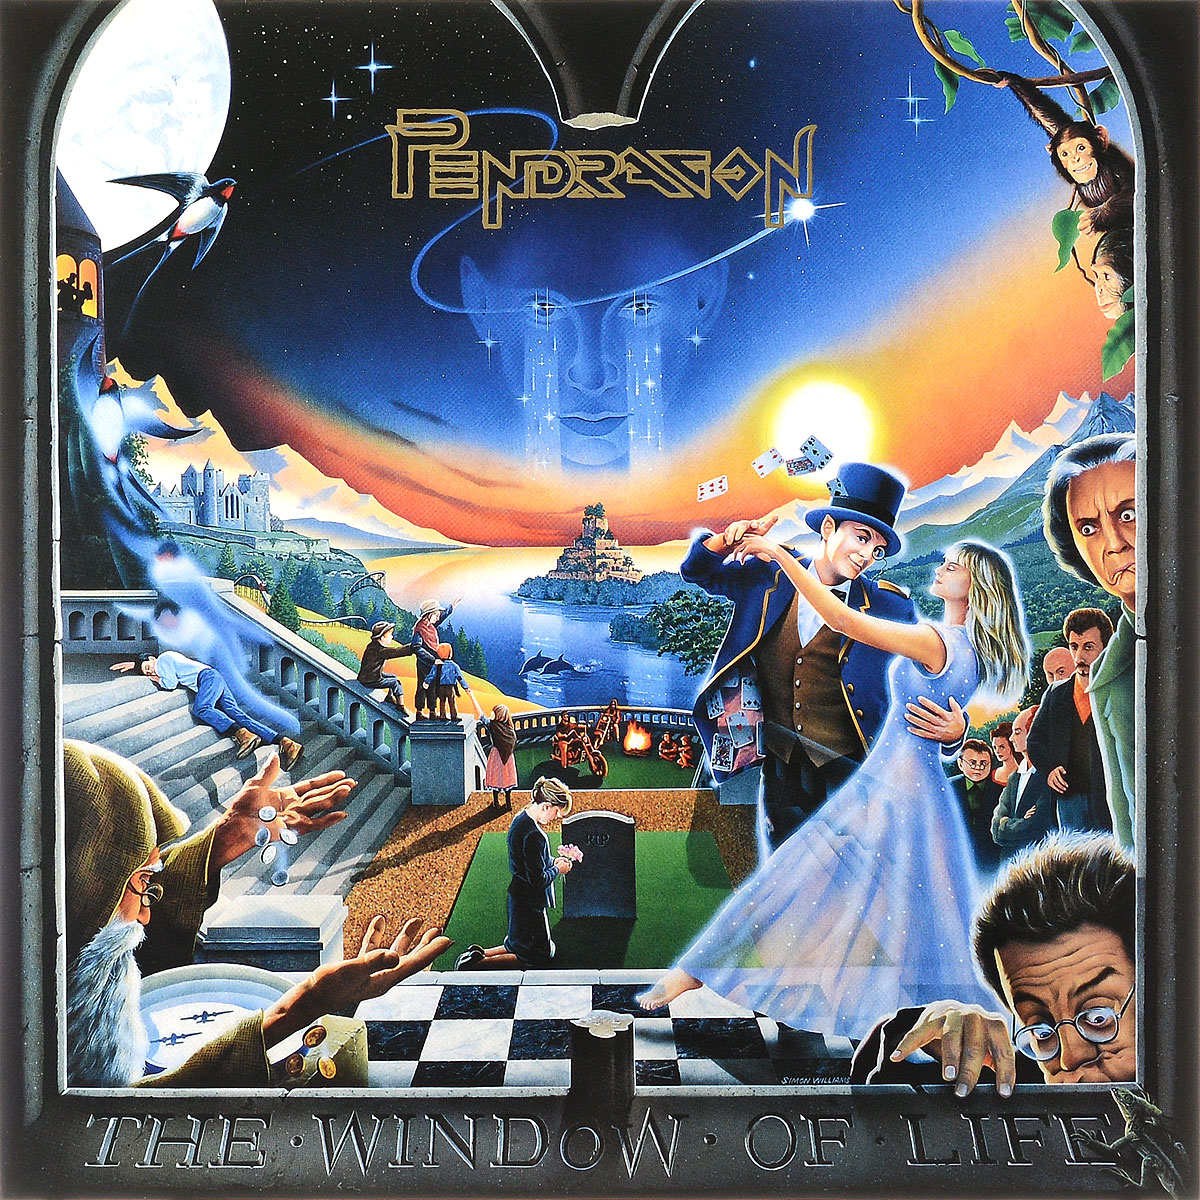 Pendragon Pendragon. The Window Of Life. 21st Anniversary Deluxe Edition (2LP)